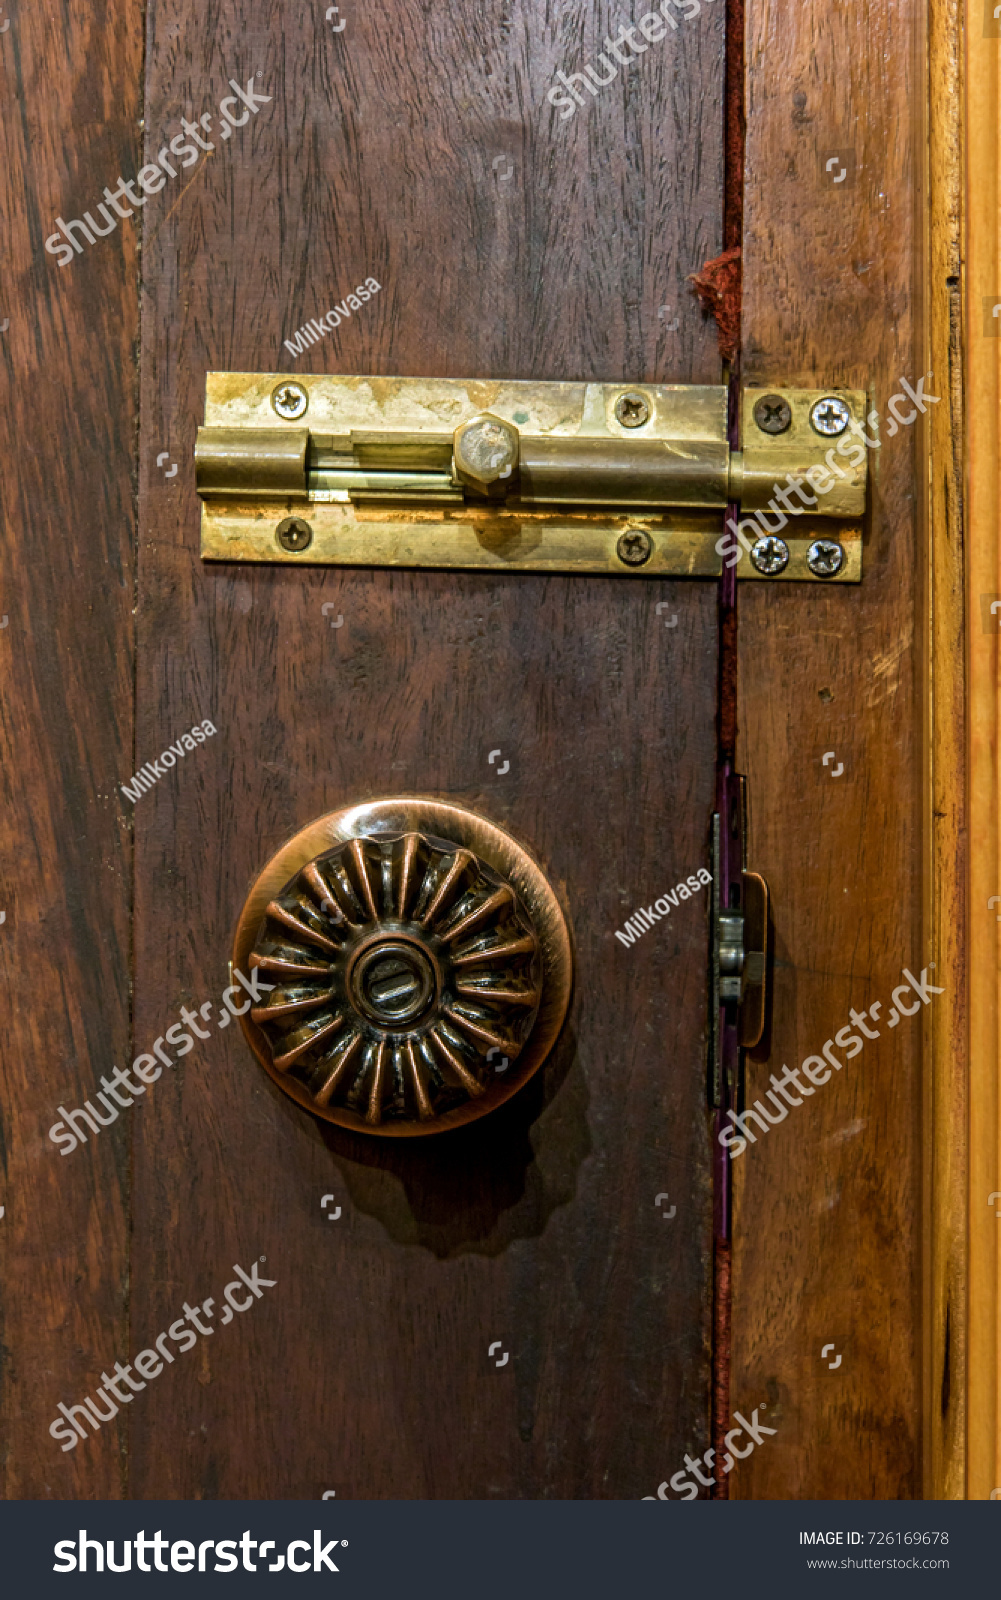 Close Up Old Decorative Door Knob With Latch On Wood Door. Detail Of A Aged